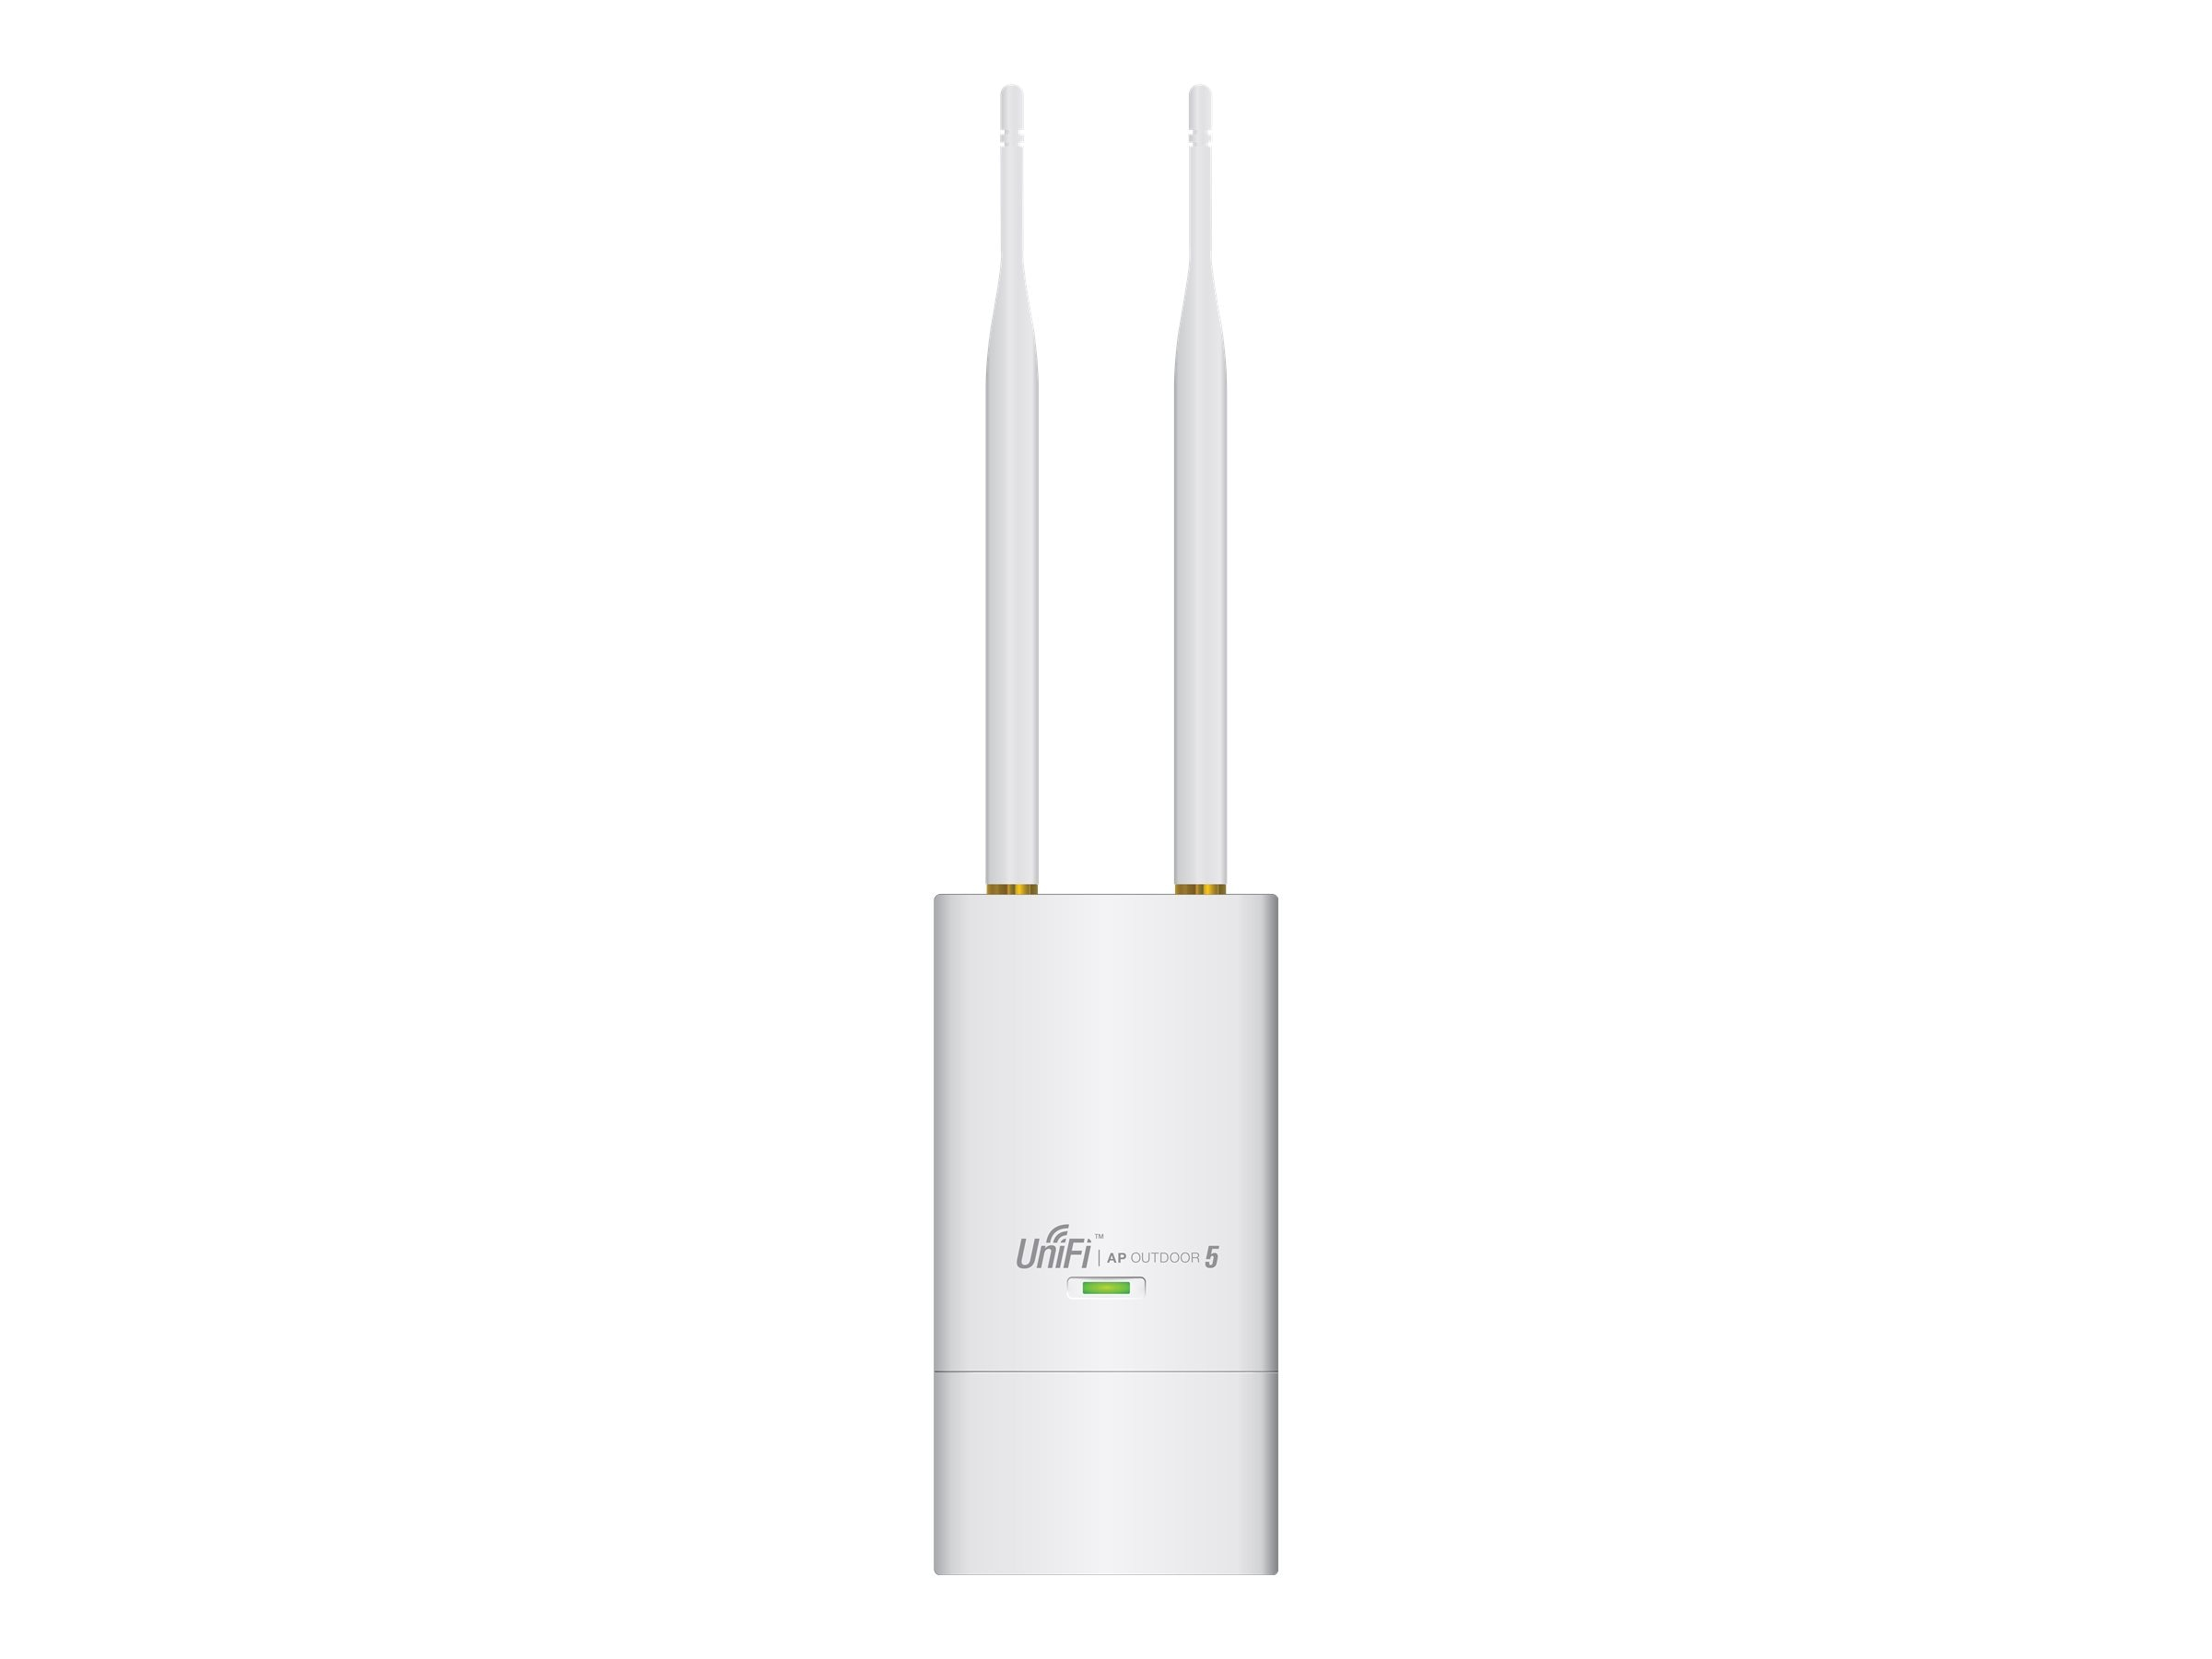 Ubiquiti Unified AP Outdoor 5GHz, UAP-OUTDOOR-5, 17054574, Wireless Access Points & Bridges